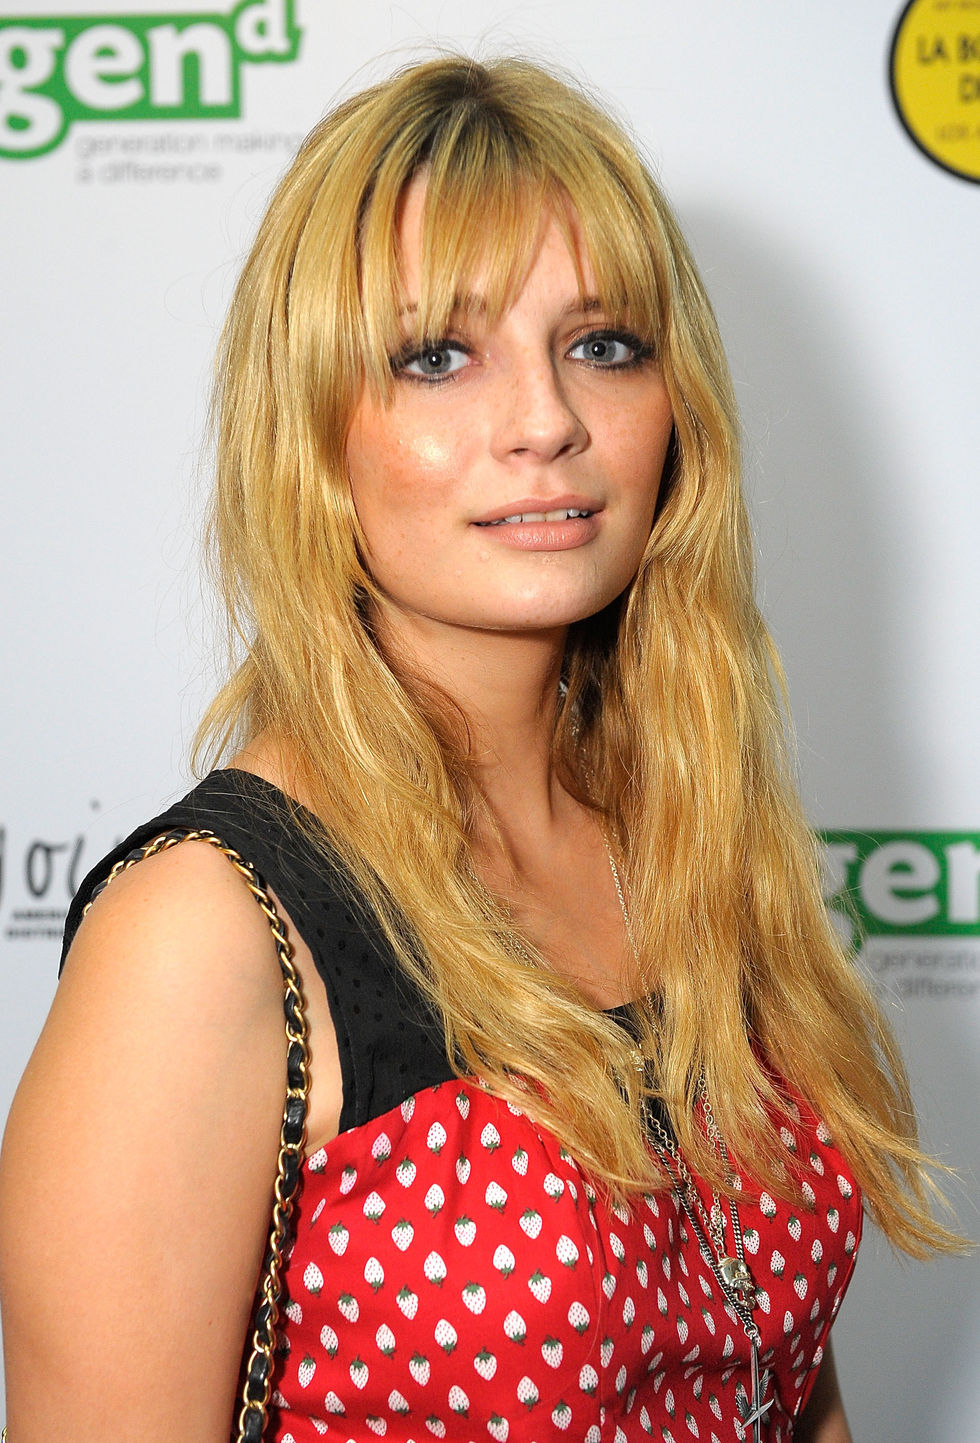 mischa-barton-gen-d-event-in-los-angeles-01